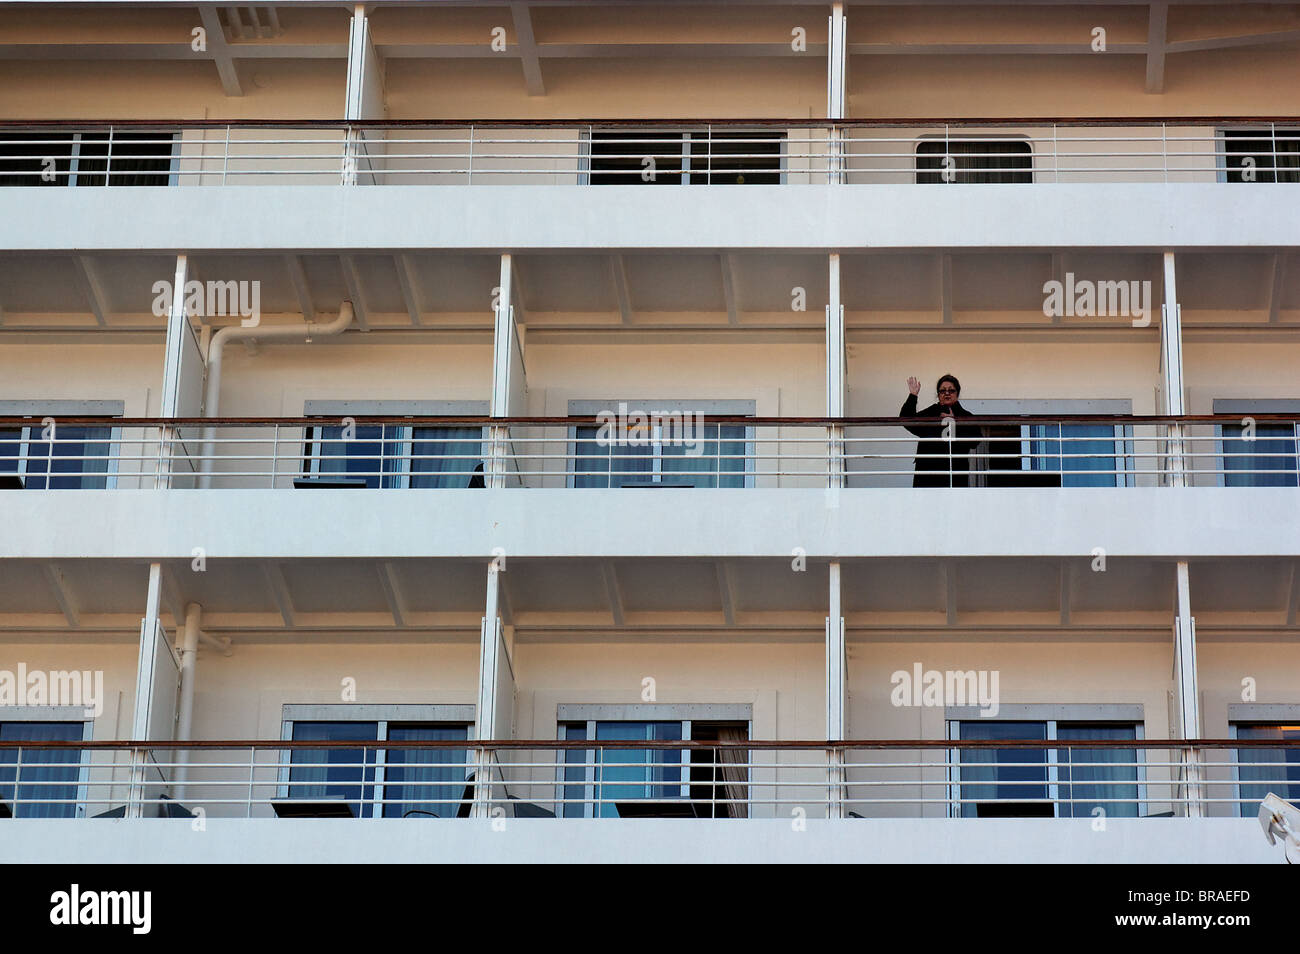 The cabins of a cruise ship with a woman waving - Stock Image